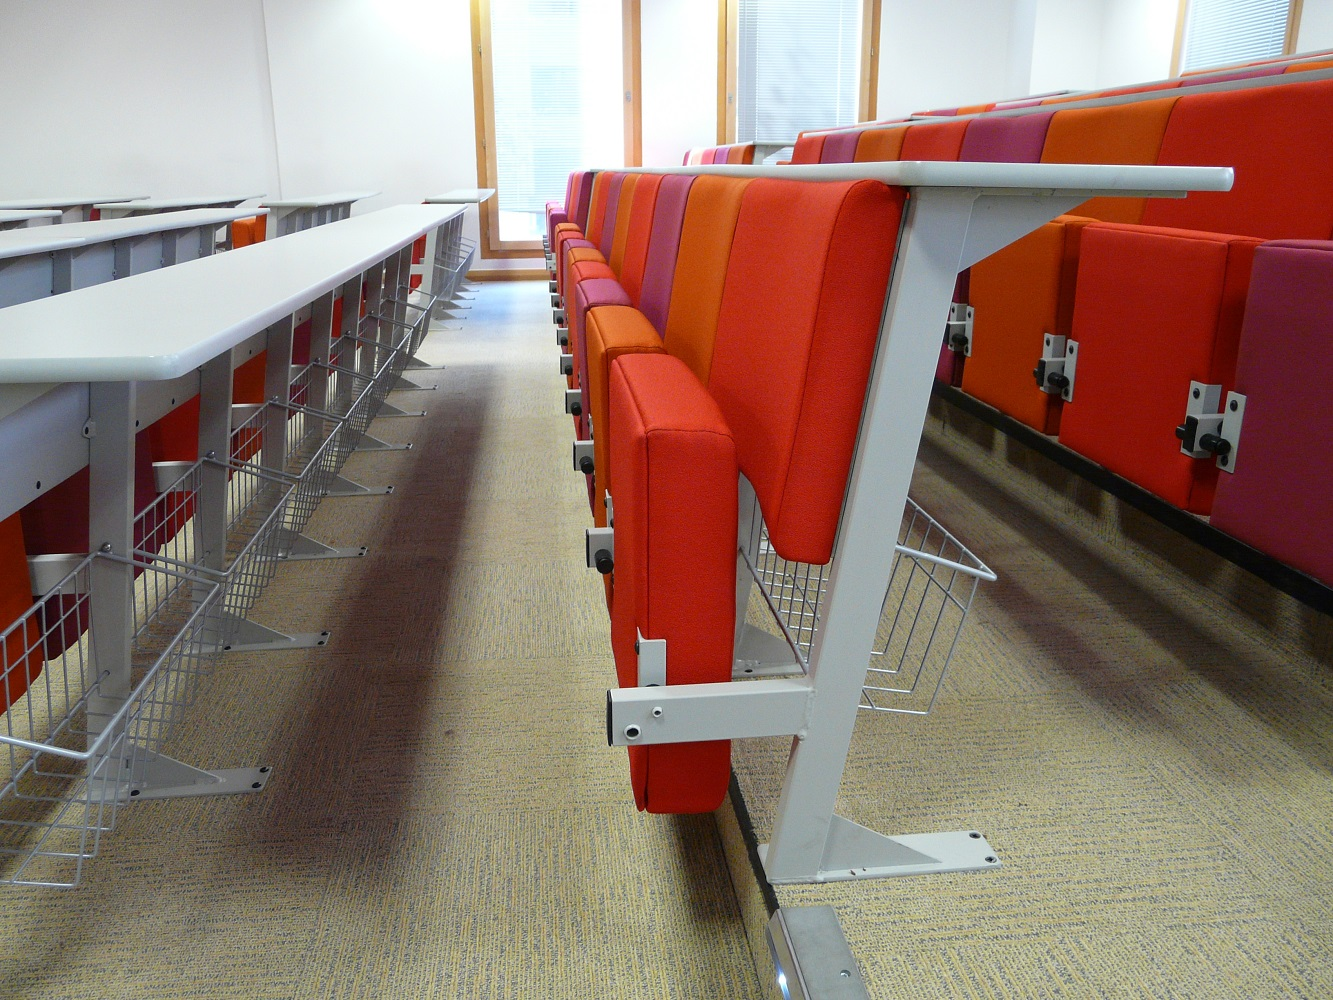 Lecture theatre seating with storage baskets under desk